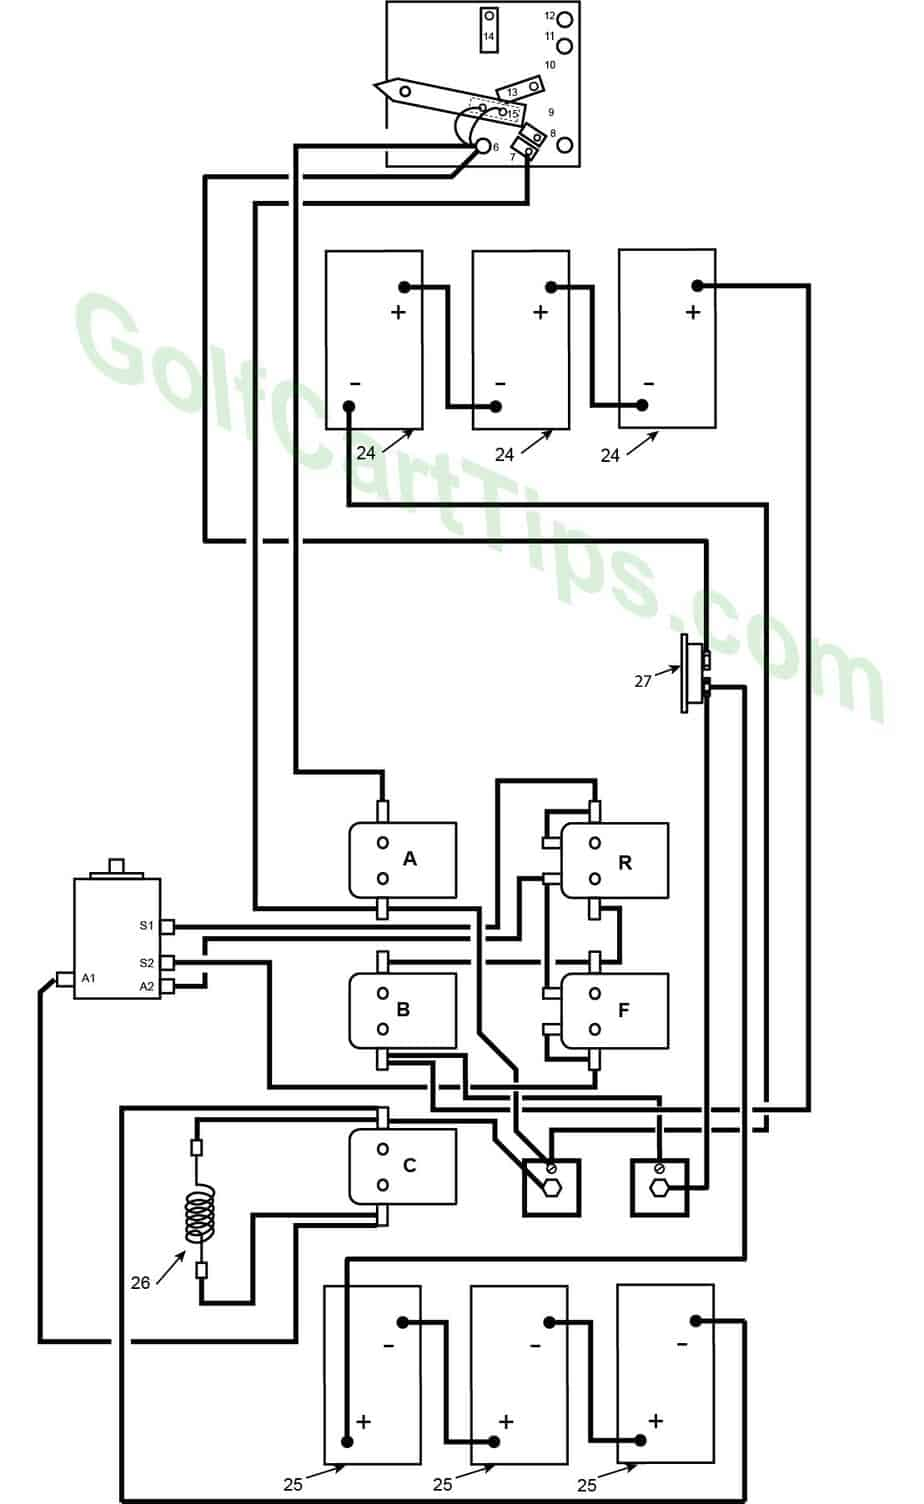 Ezgo Golf Cart Wiring Diagram Lights from golfcarttips.com